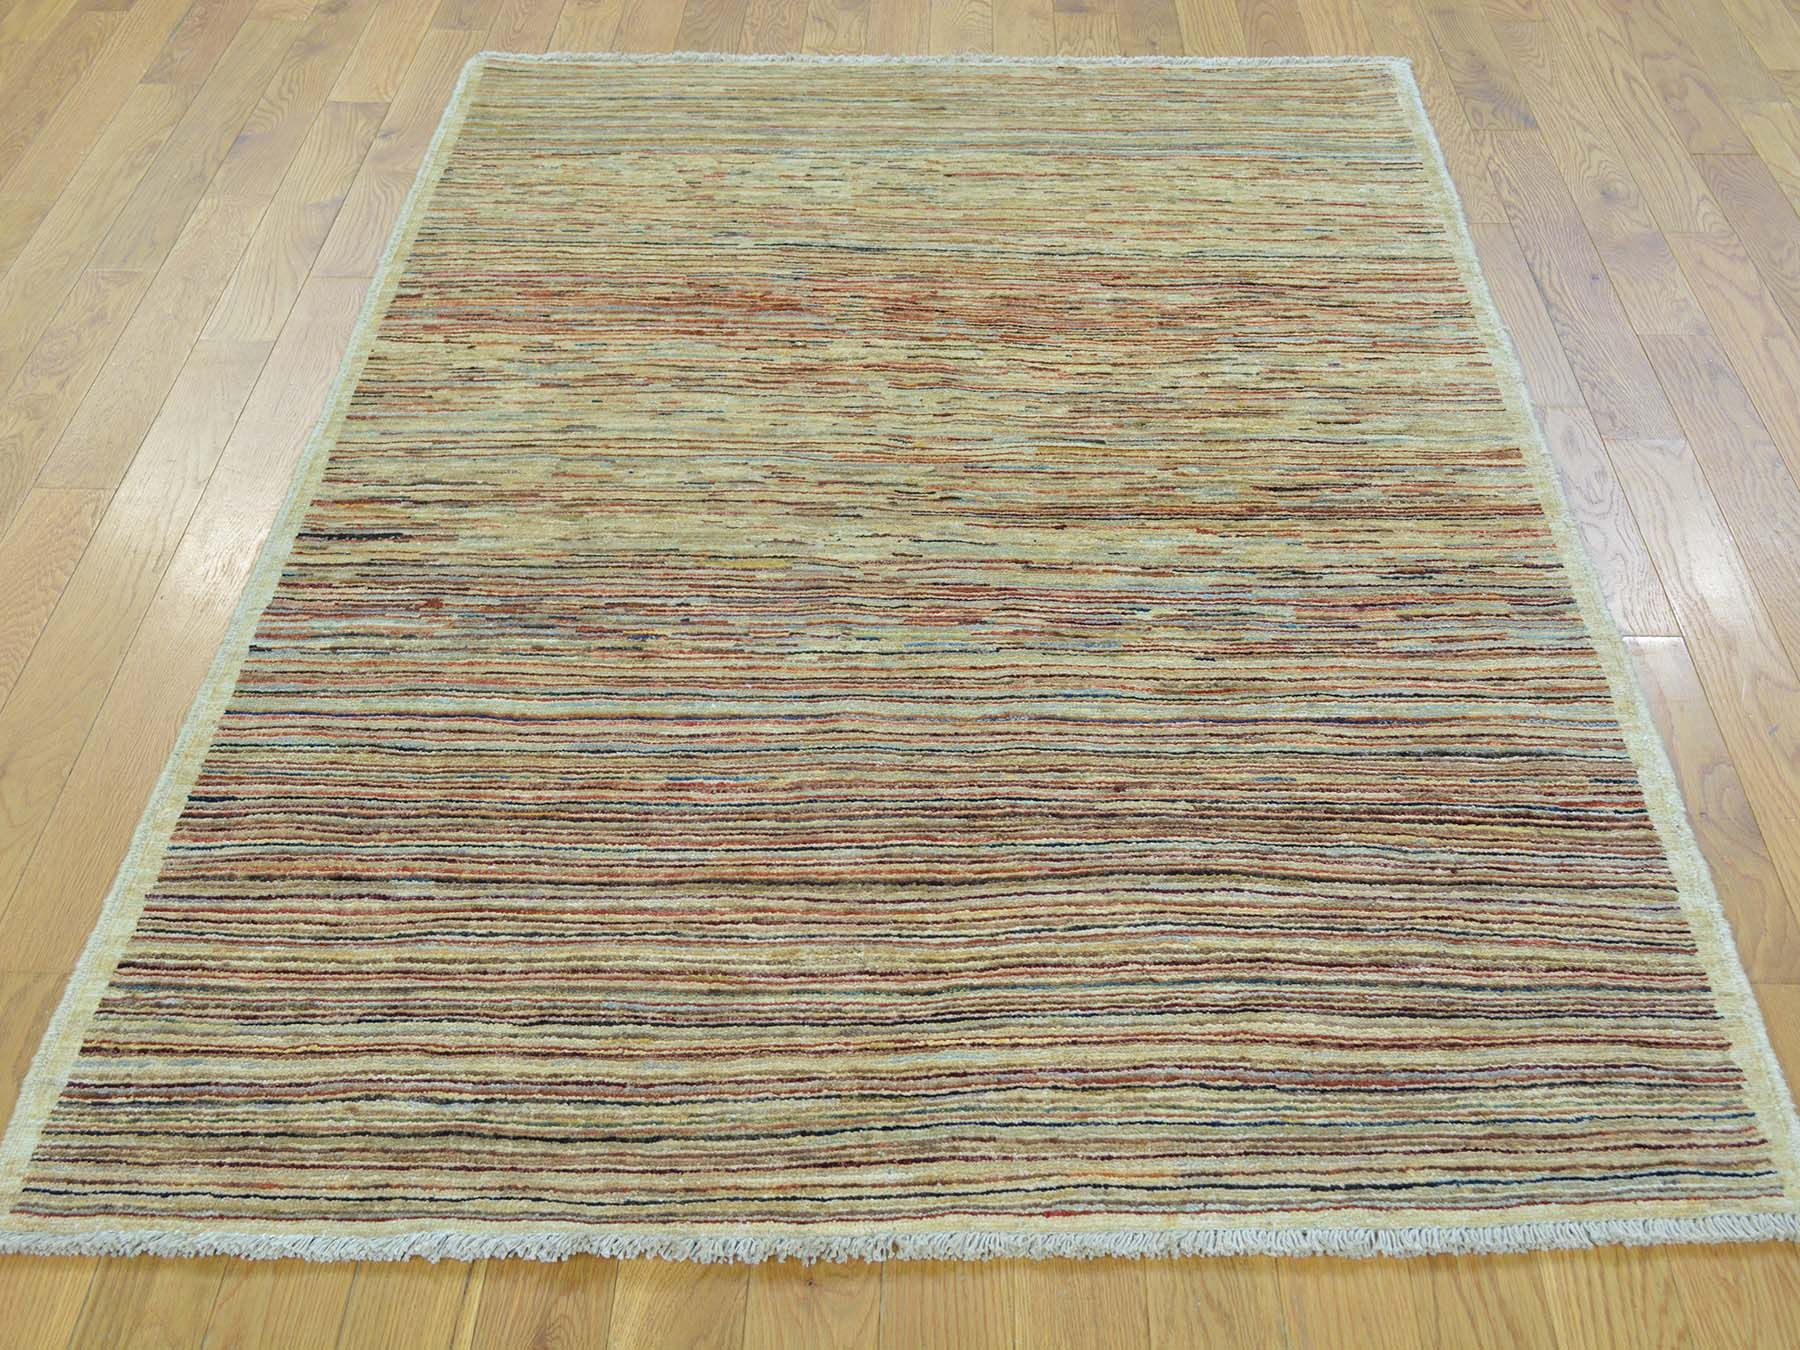 Buy 4 X6 Pure Wool Peshawar Gabbeh Hand Knotted Oriental Rug Rugs